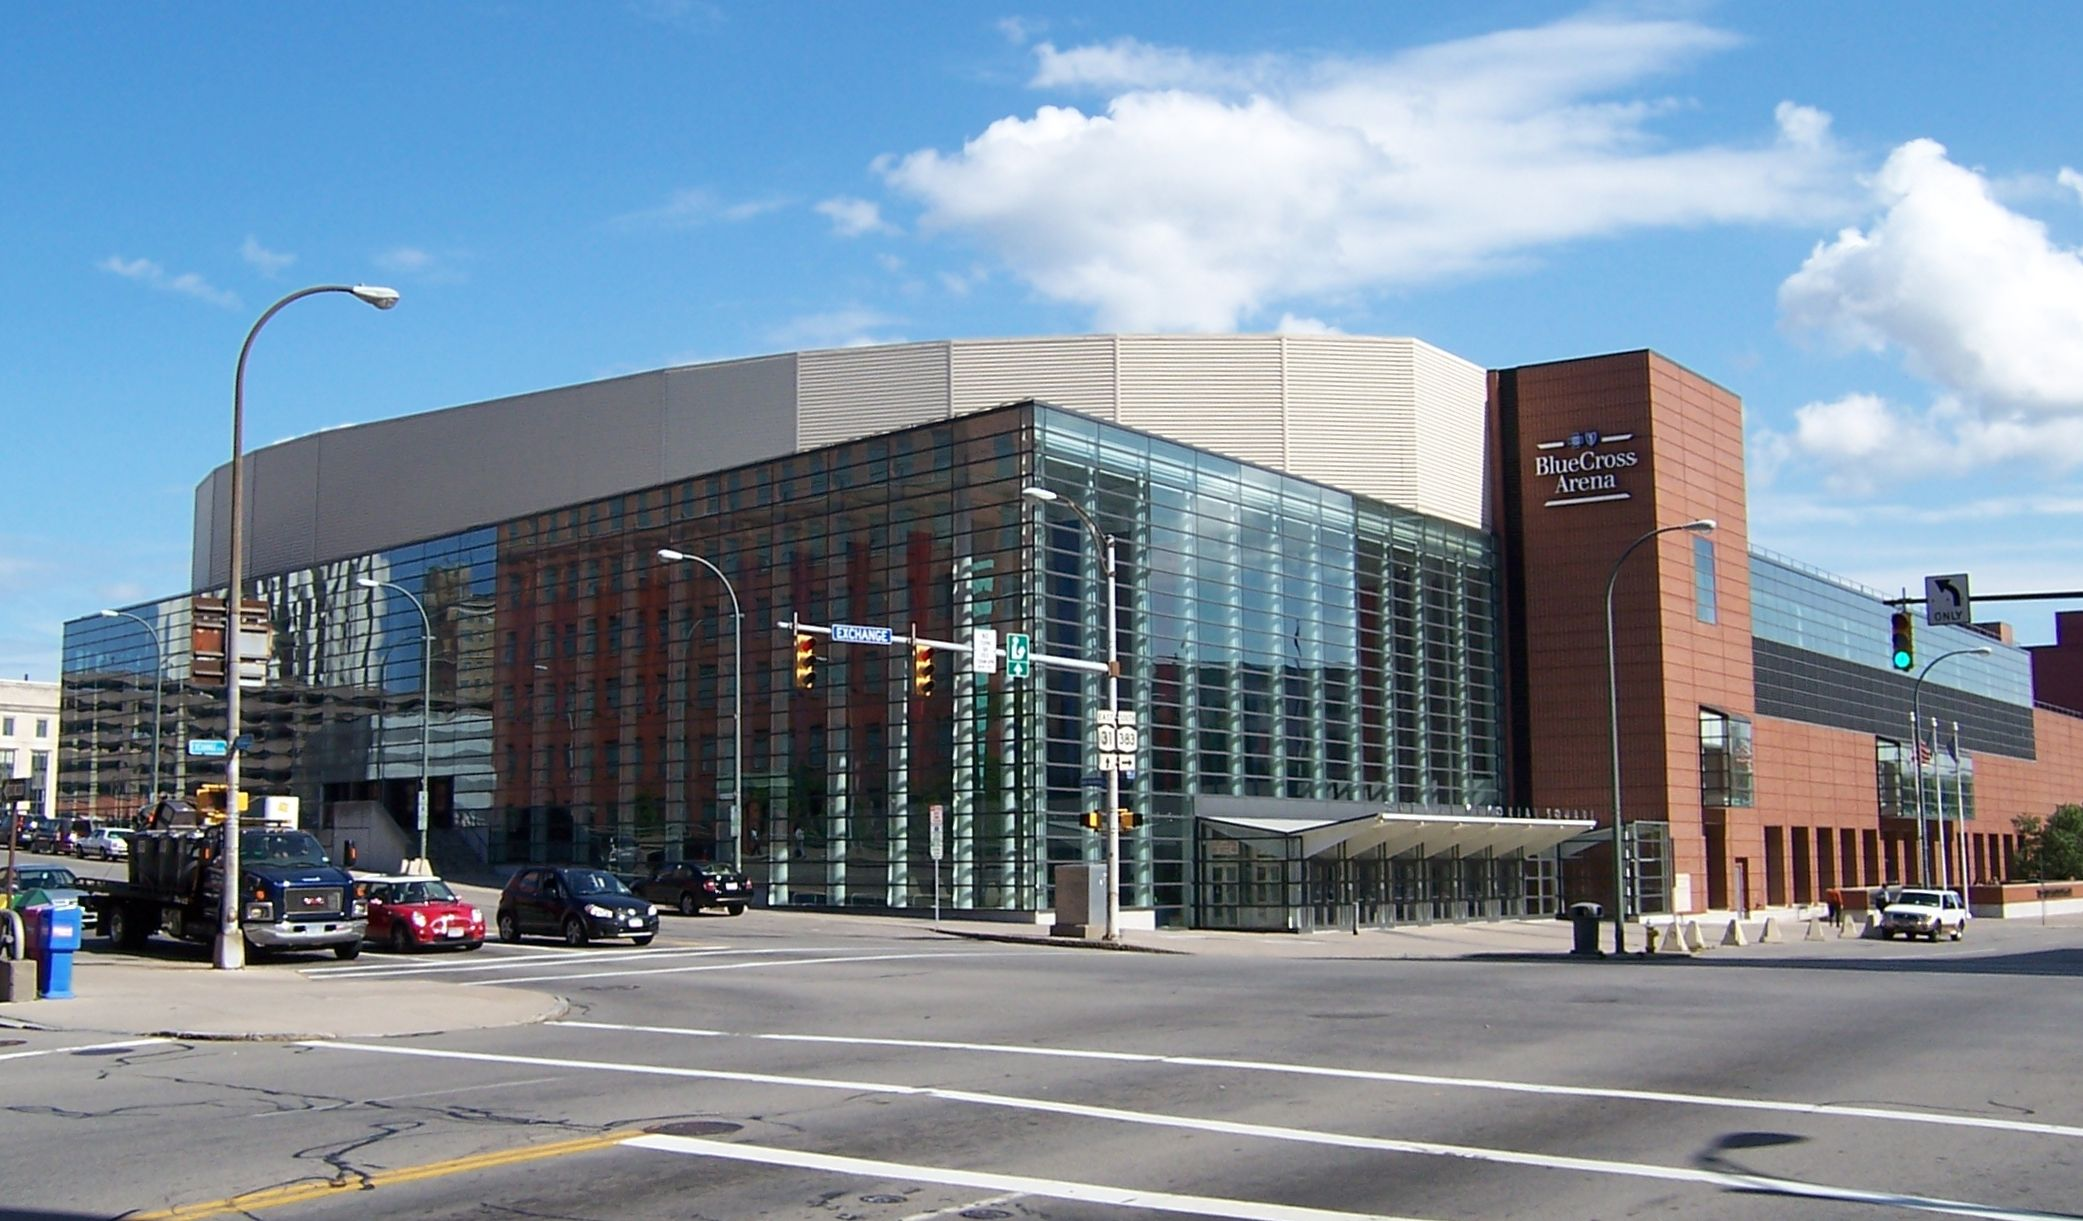 1 bedroom apartments for rent in rochester ny%0A The Blue Cross Arena at the War Memorial  Rochester  NY   Home of